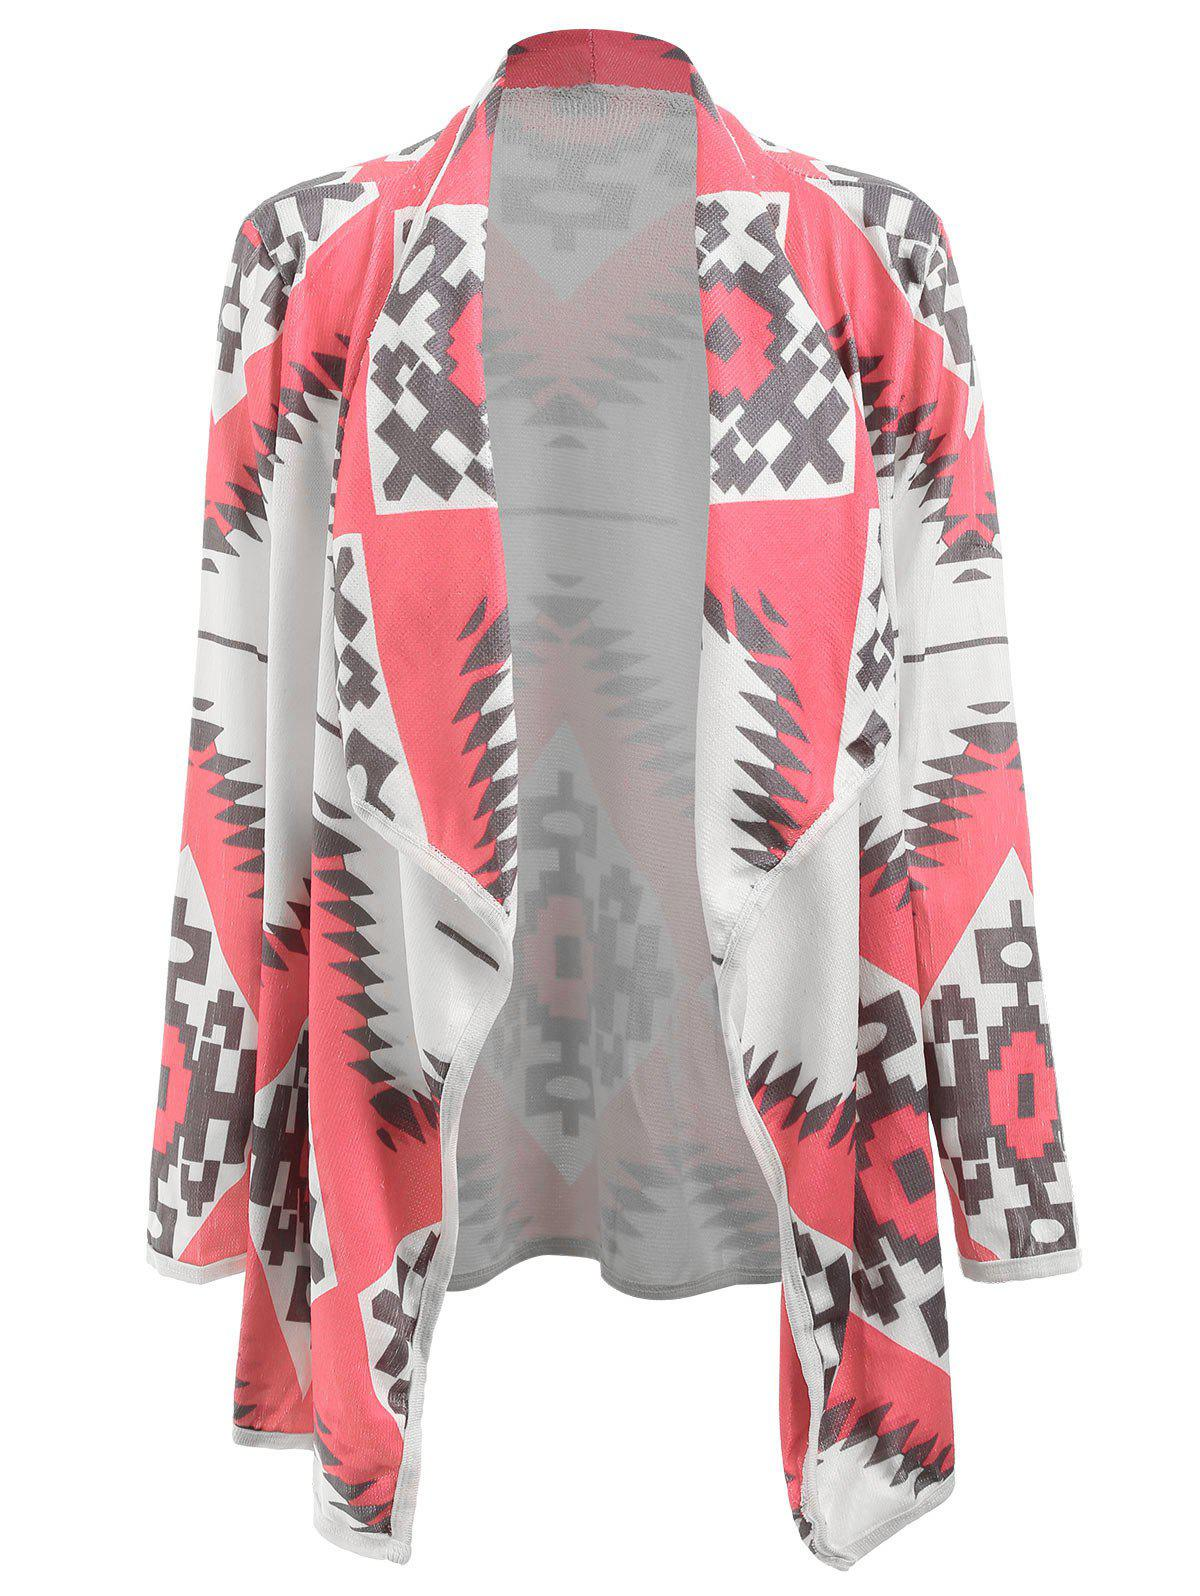 Stylish Long Sleeve Turn-Down Collar Geometric Print Women's Cardigan - LIGHT PINK XL